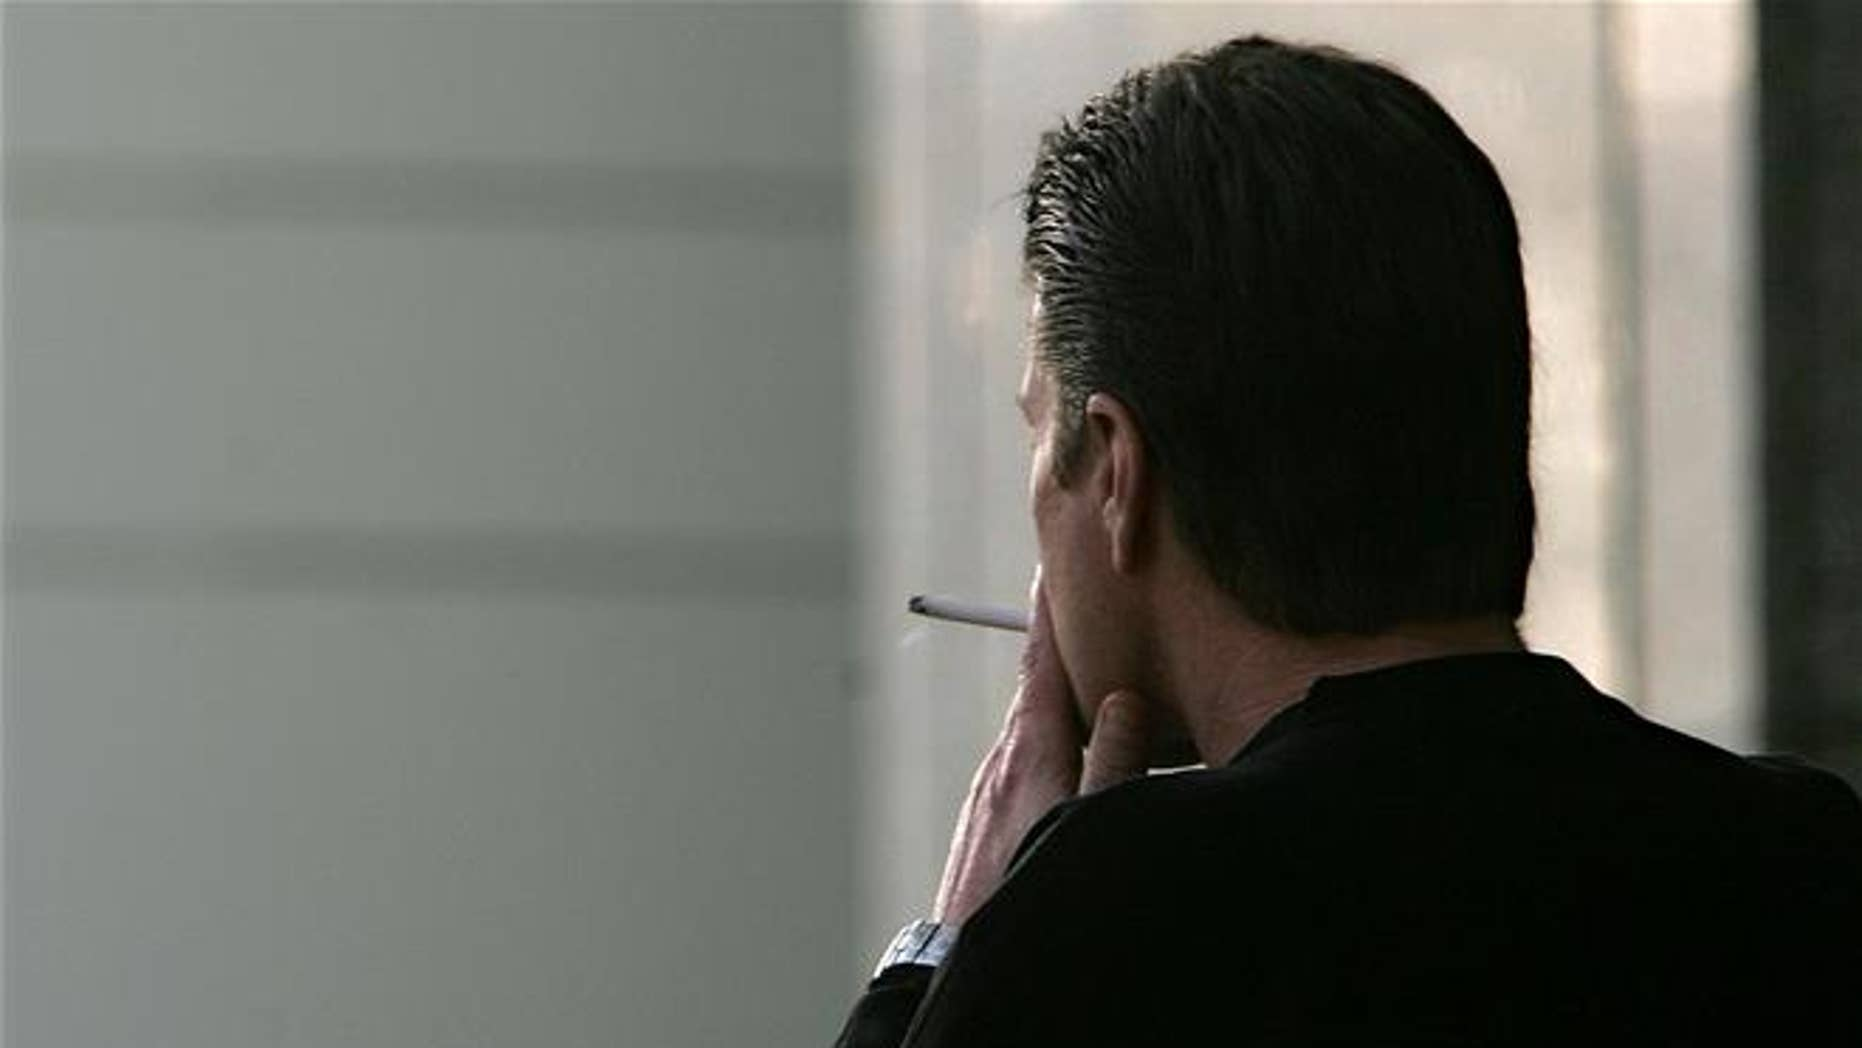 Smoking may take a toll on the quality of a man's sperm.